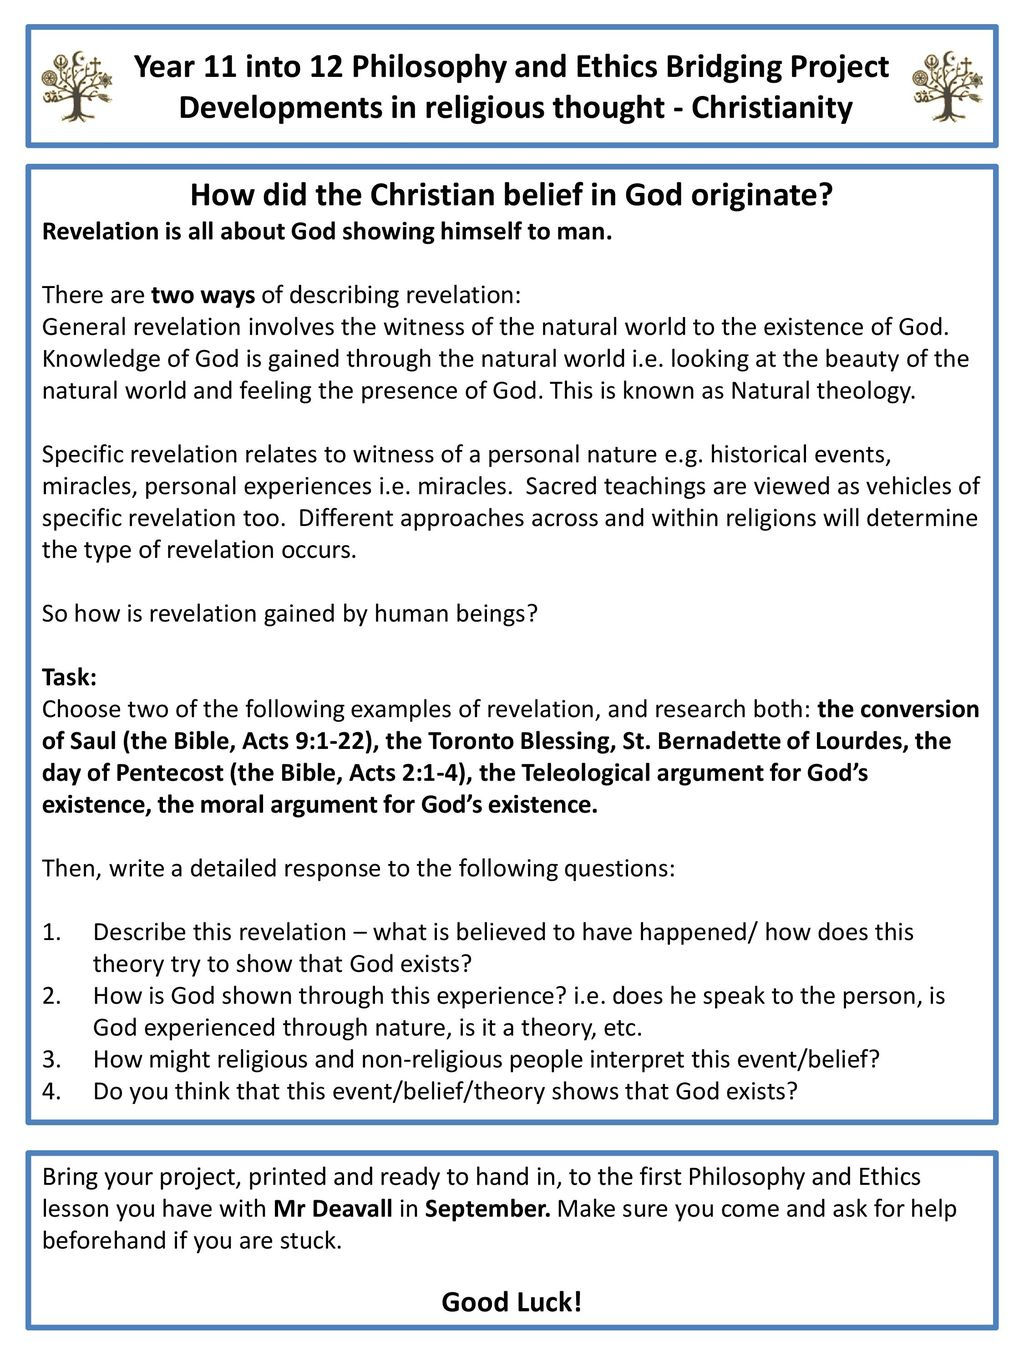 How did the Christian belief in God originate? - ppt download